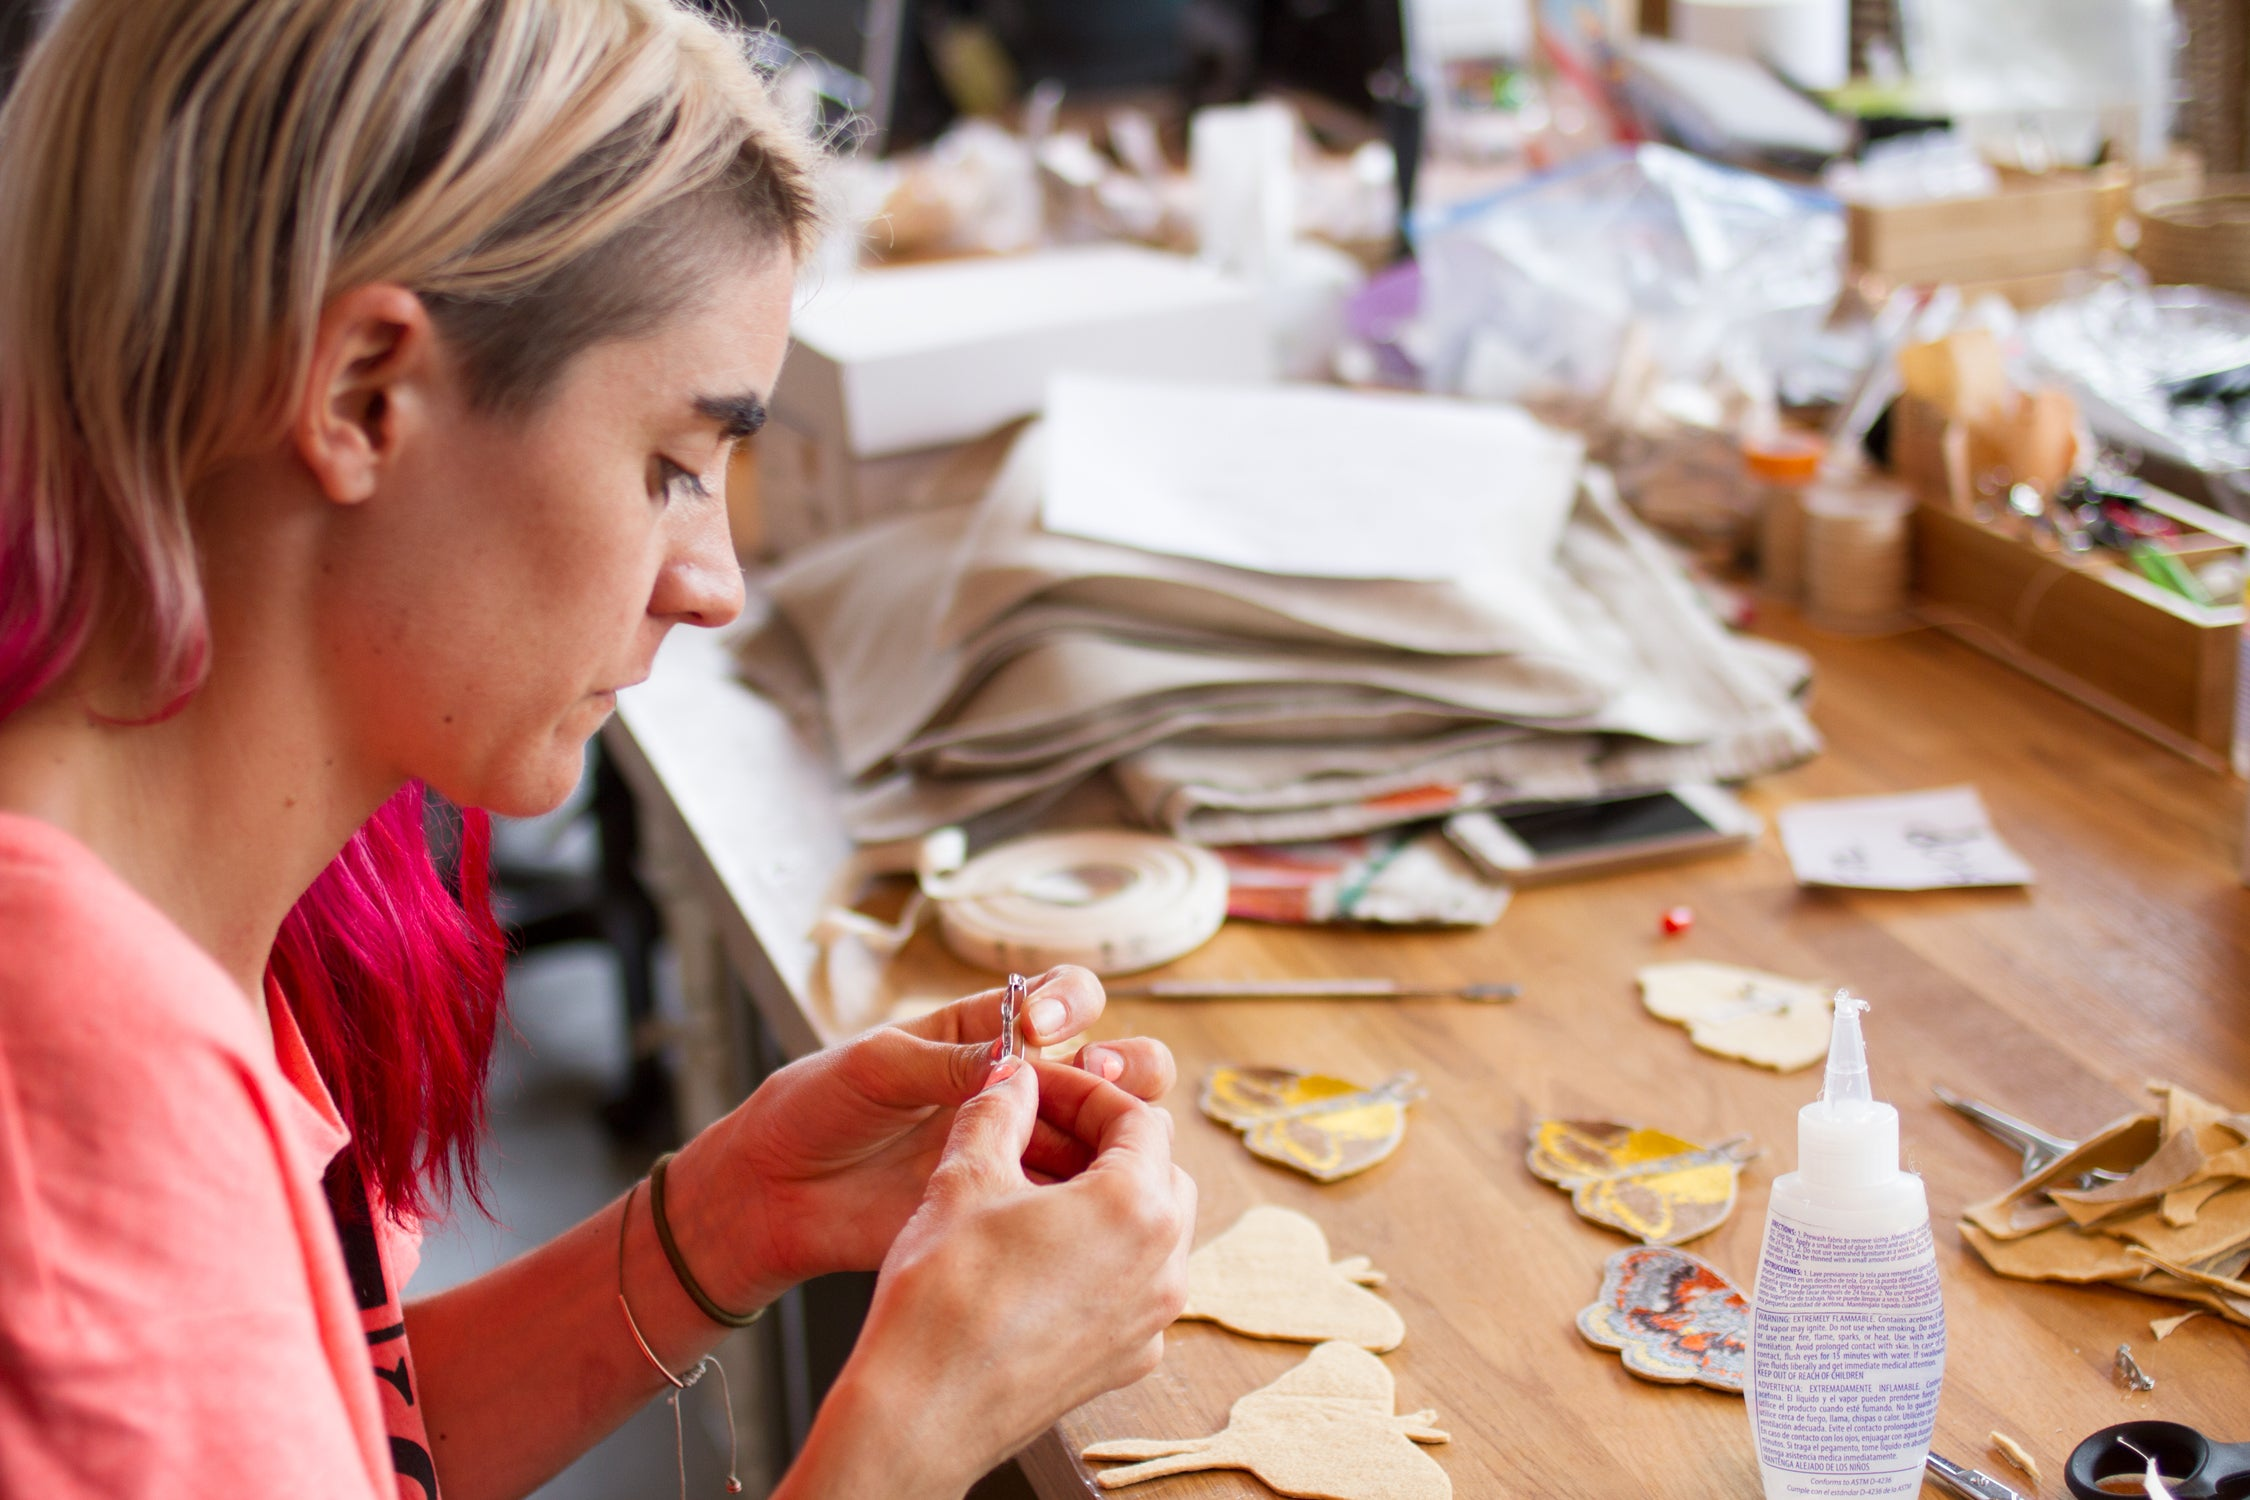 Making patches in the coral & tusk studio | k colette